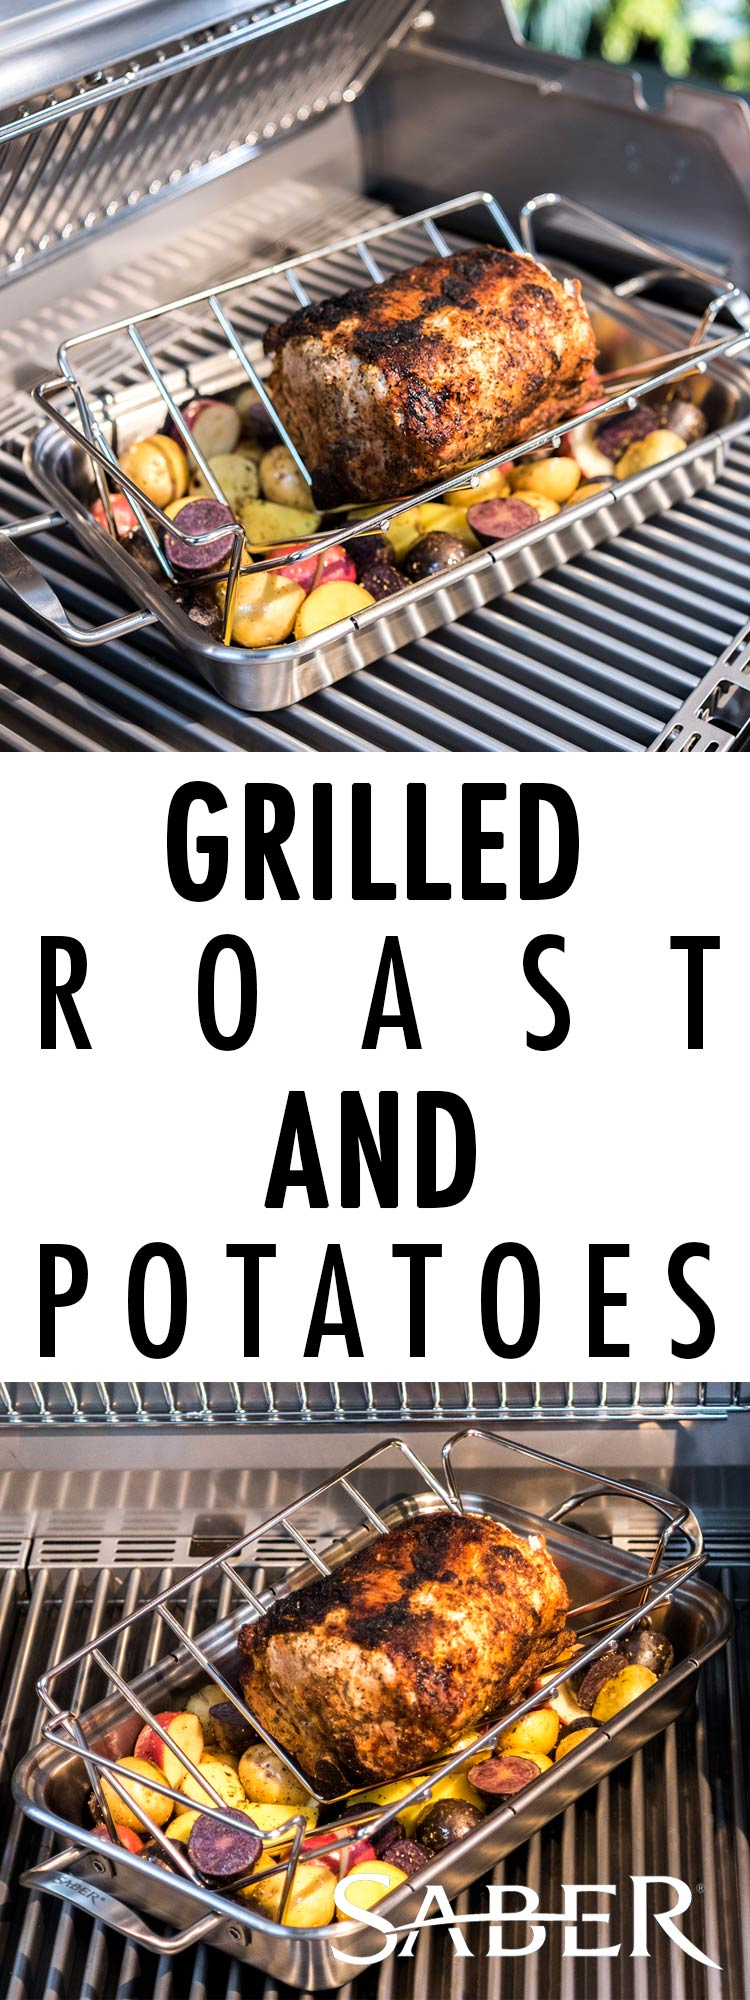 grilled roast and potatoes